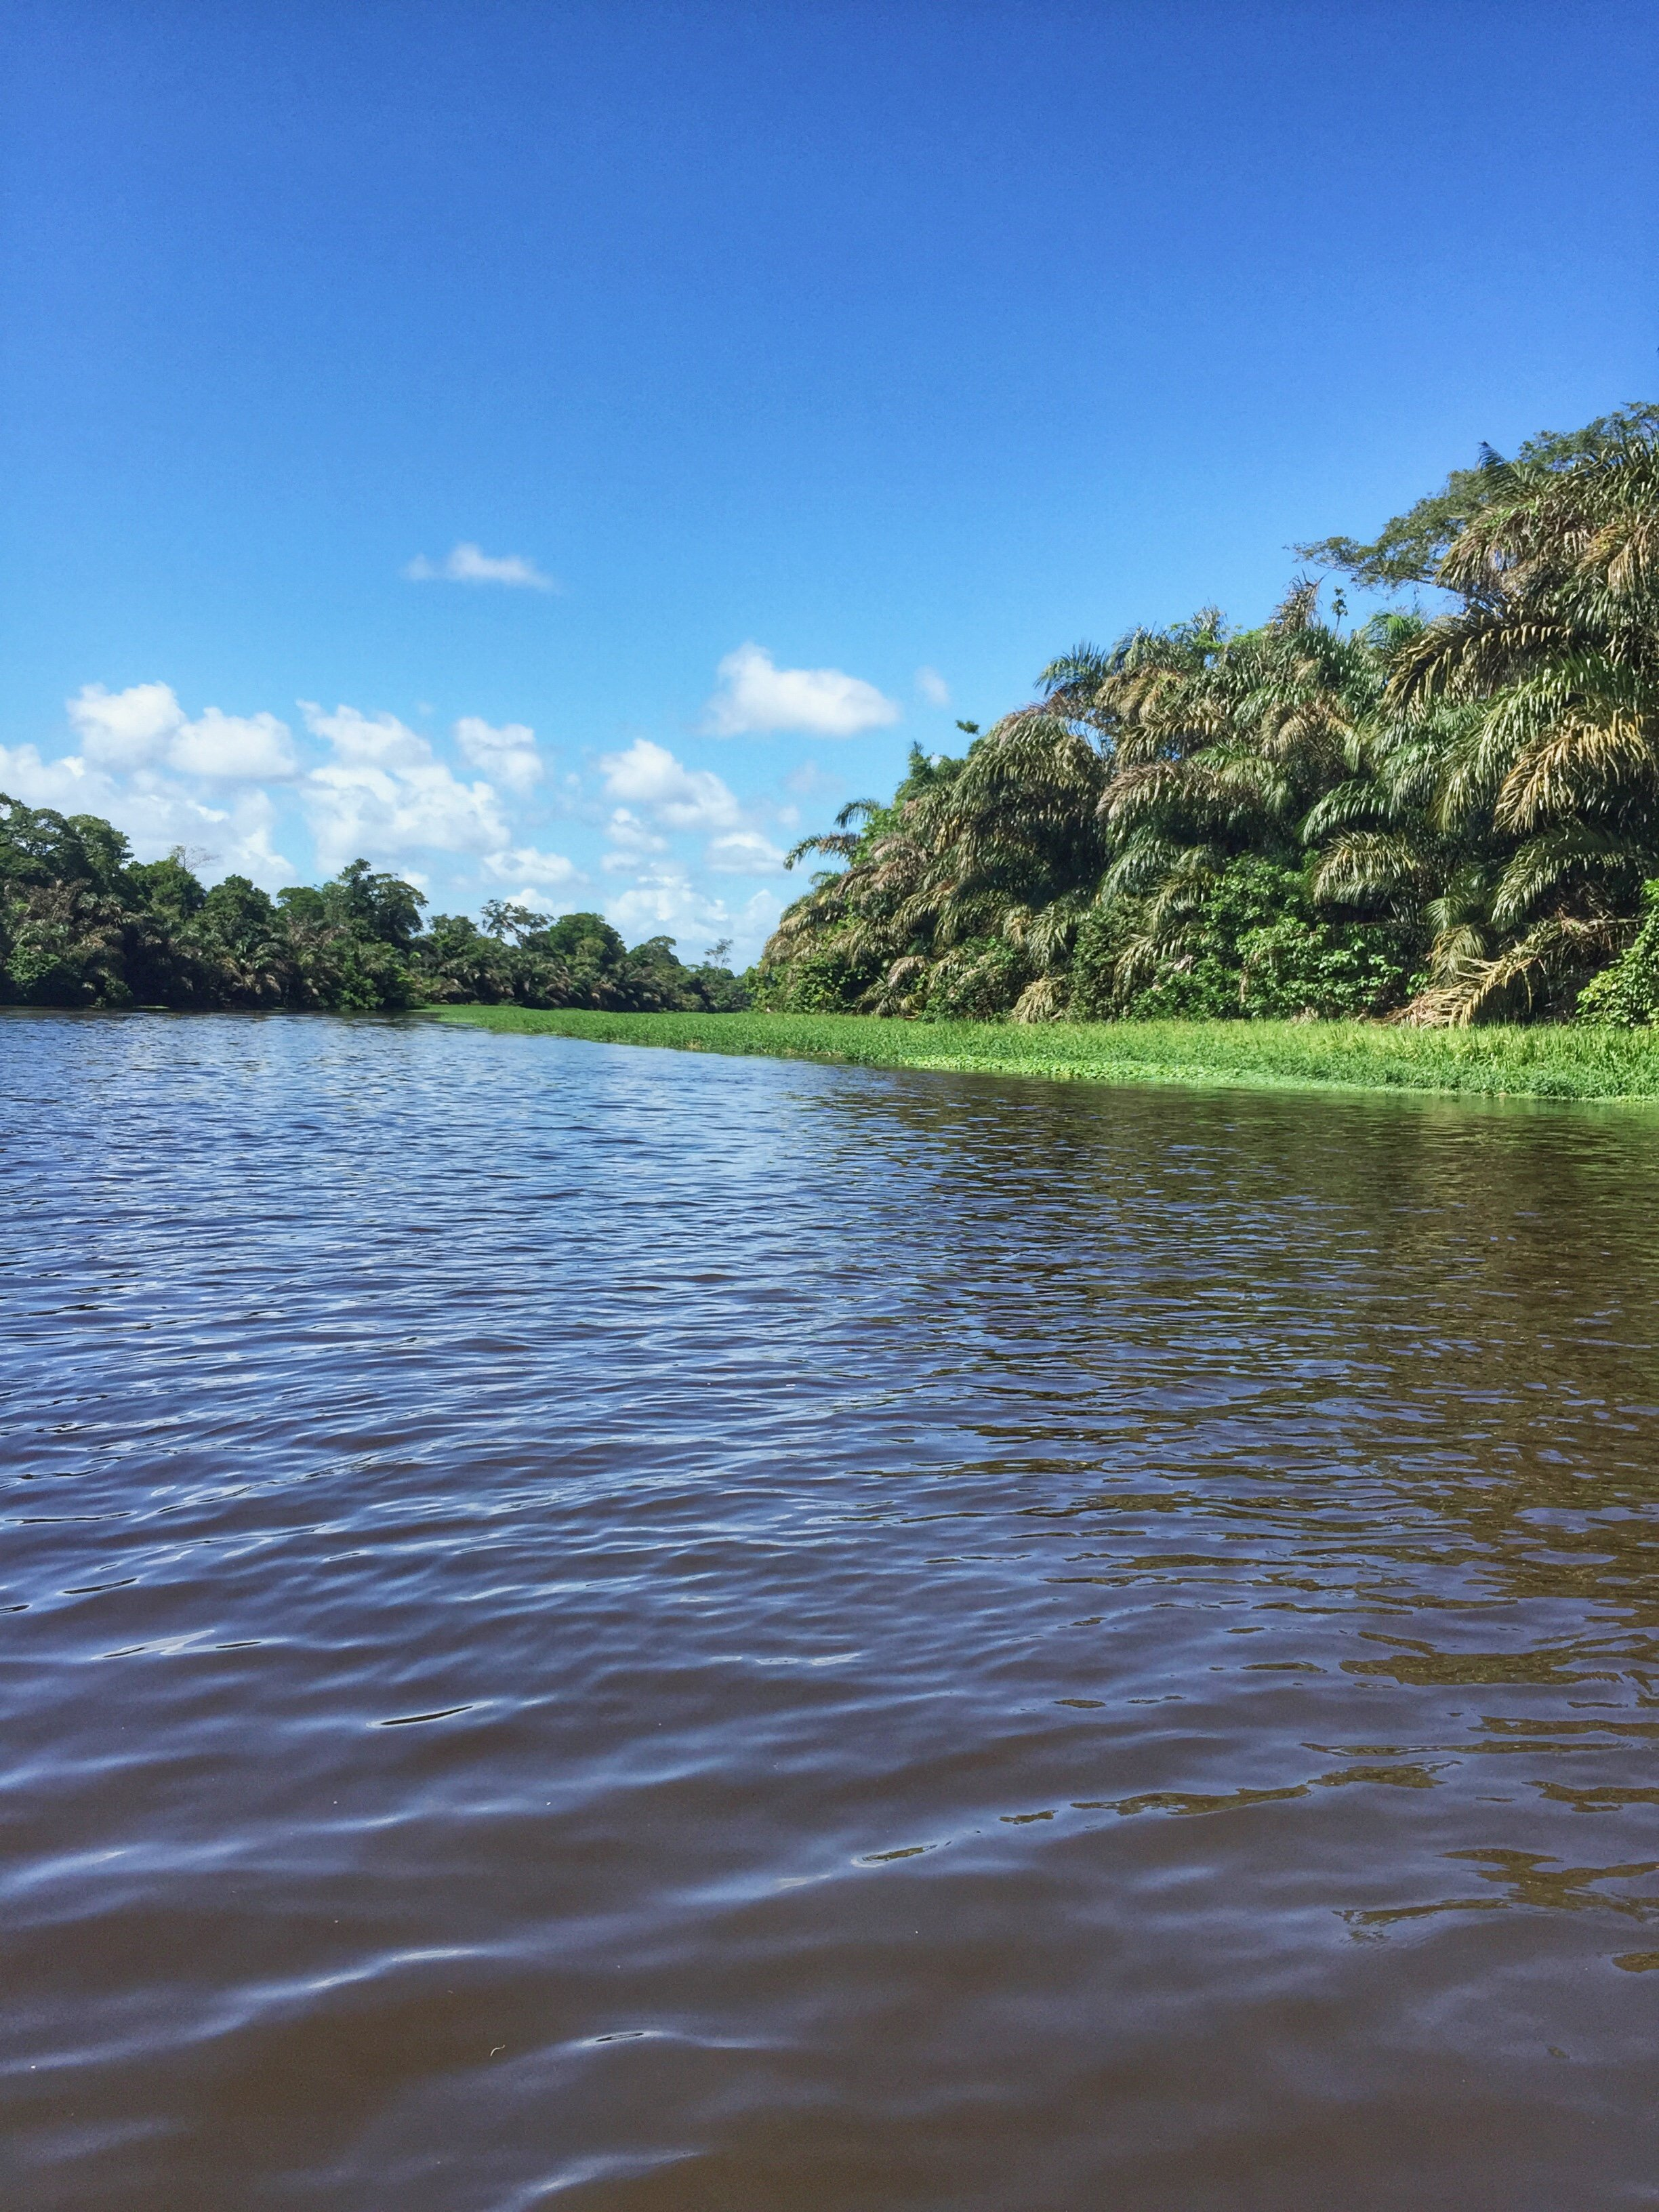 The Tortuguero River